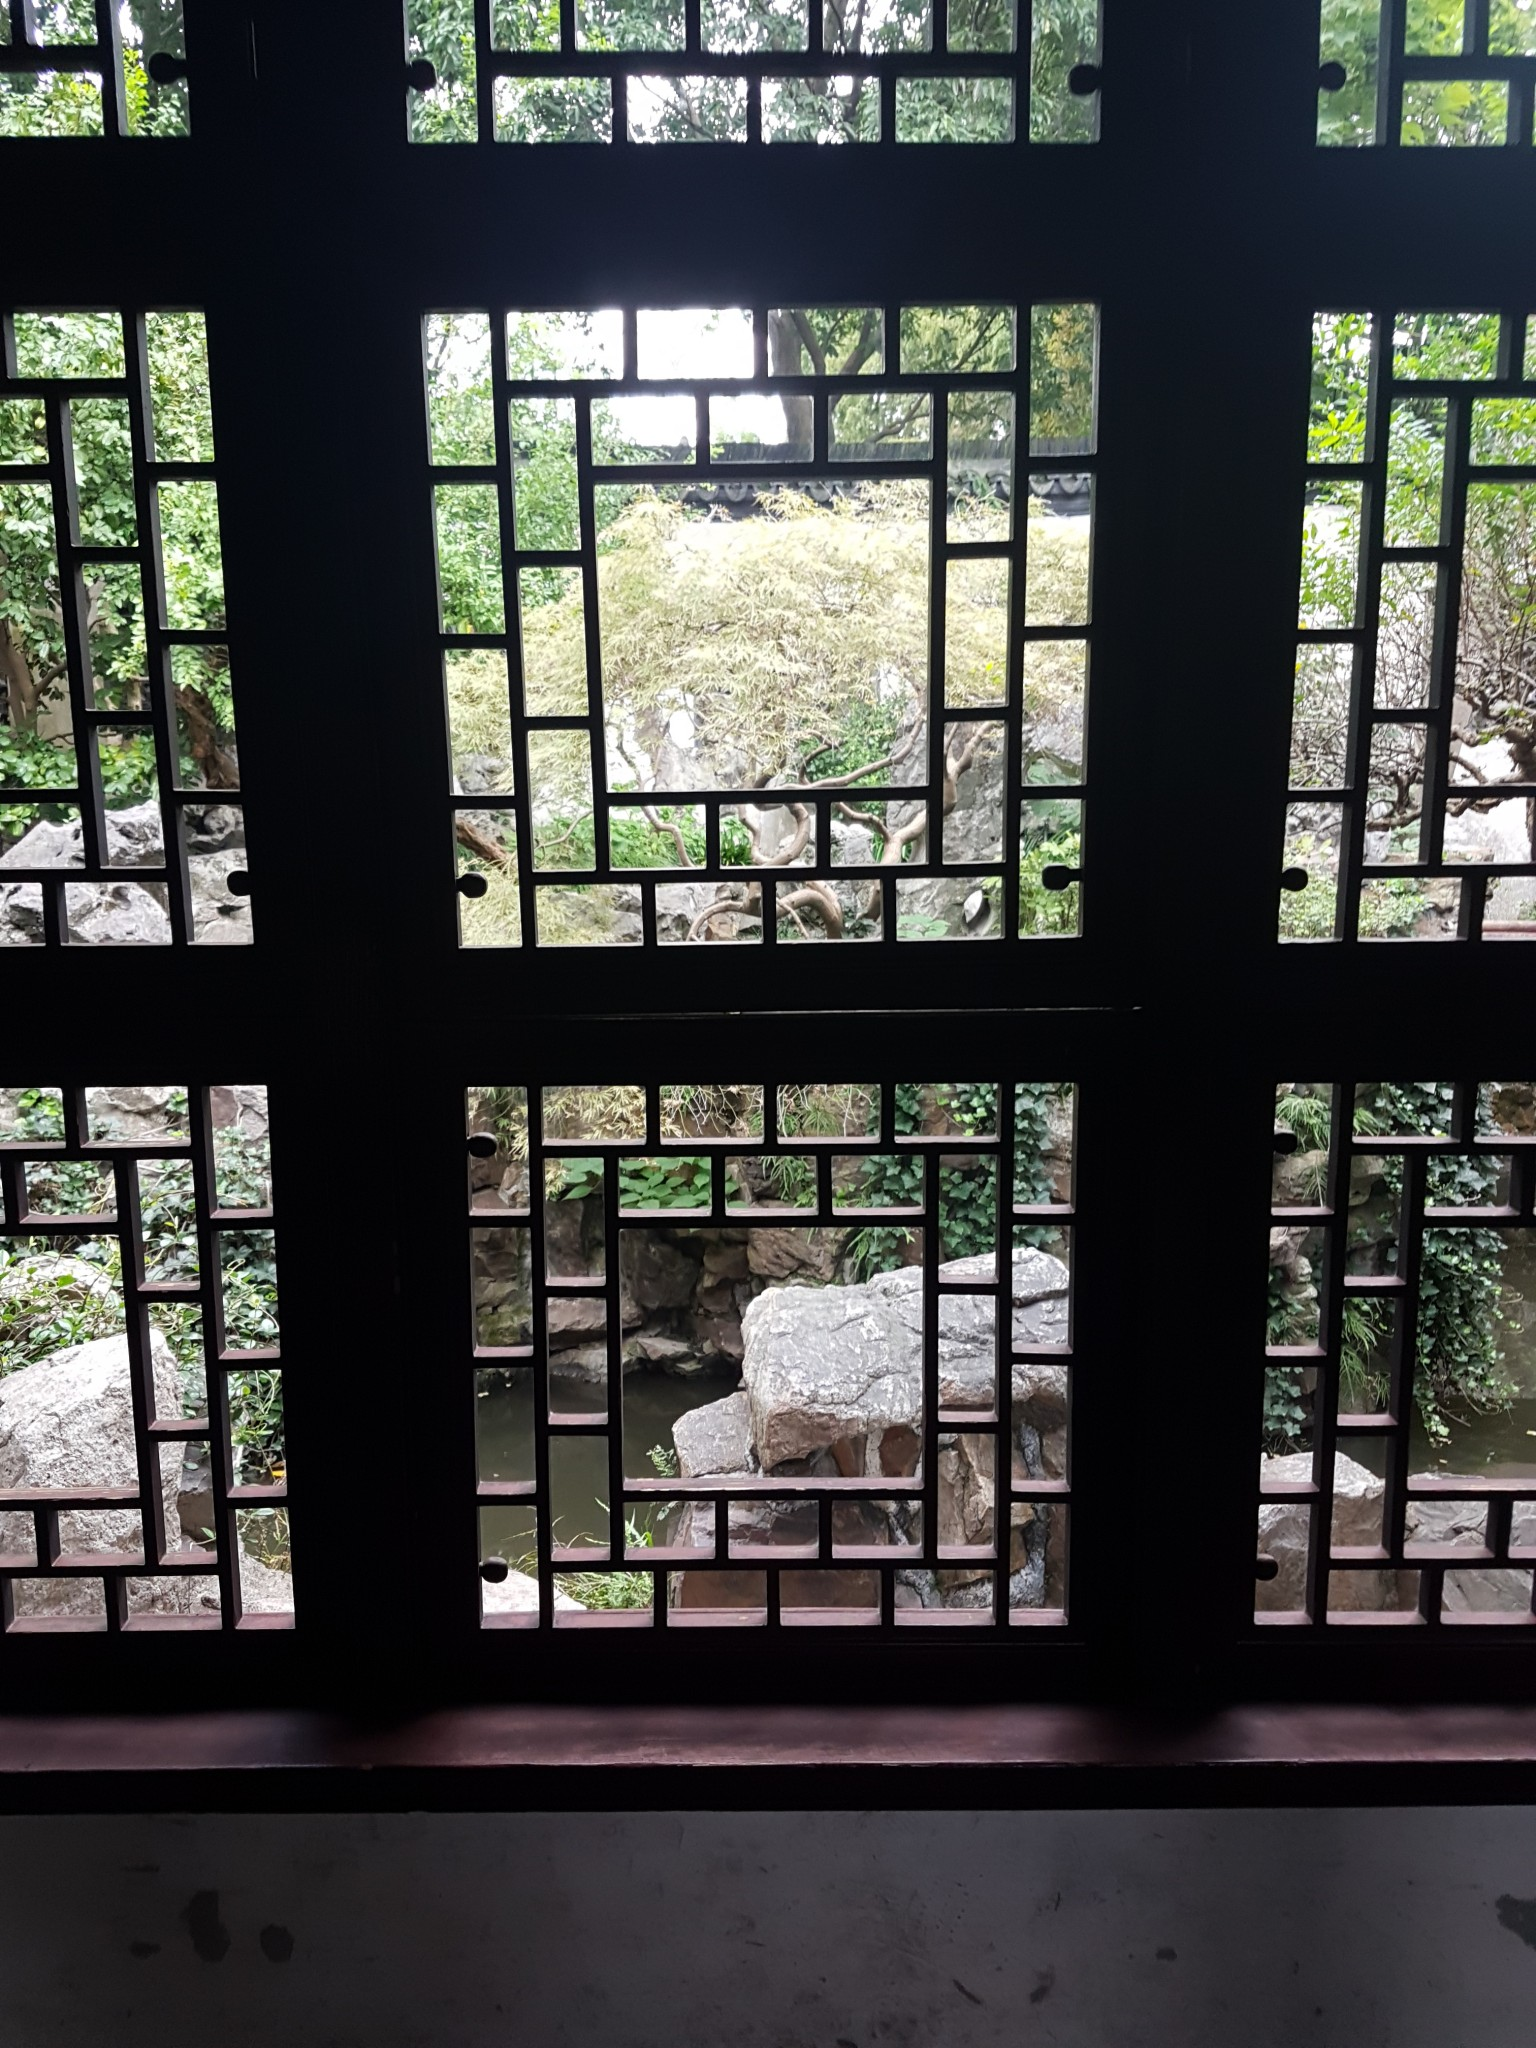 Elaborately constructed window